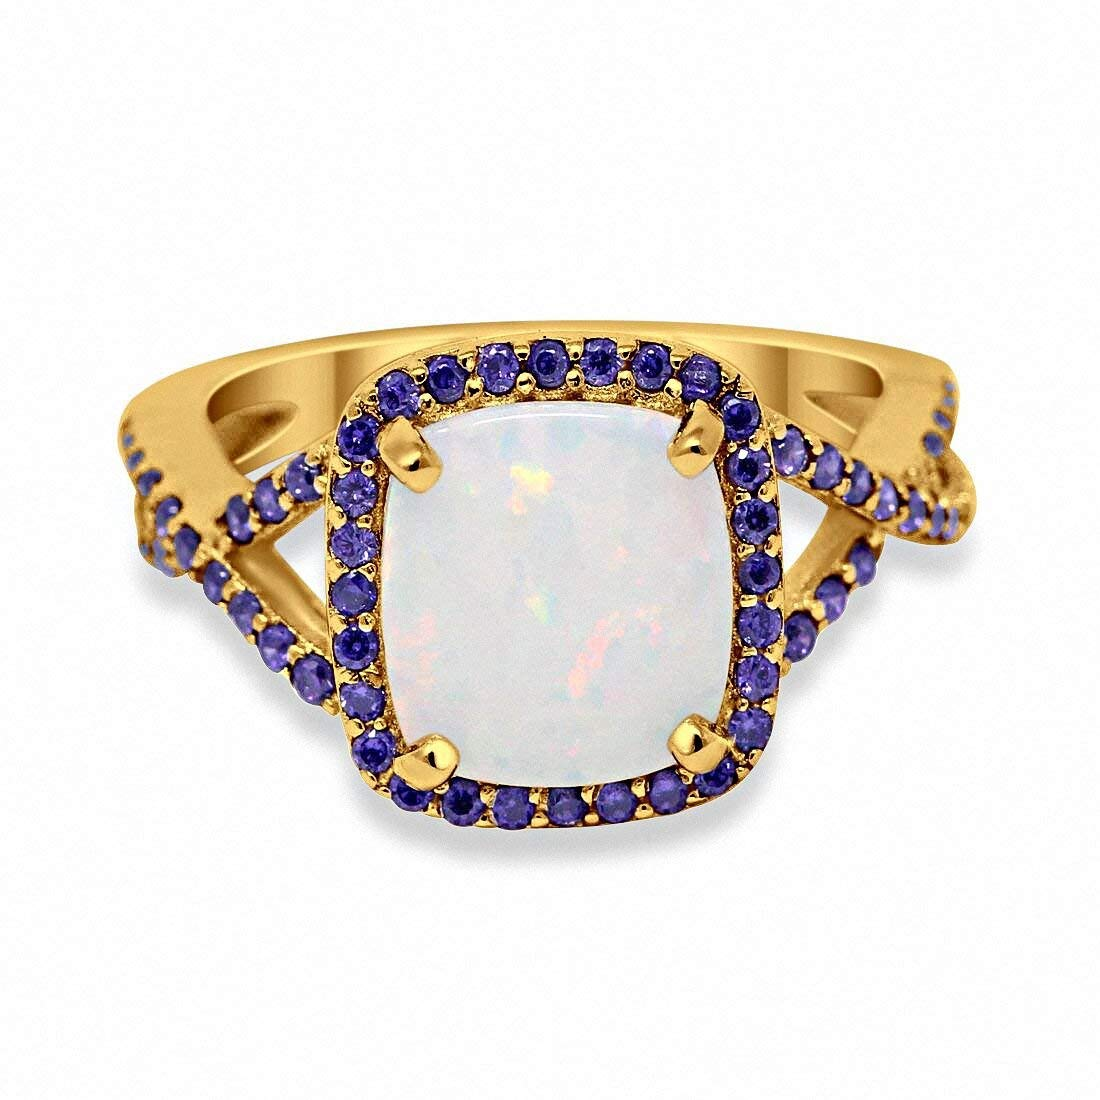 Blue Apple Co Size-6 Halo Infinity Shank Fashion Ring Round Simulated Amethyst Created White Opal Yellow Tone 925 Sterling Silver